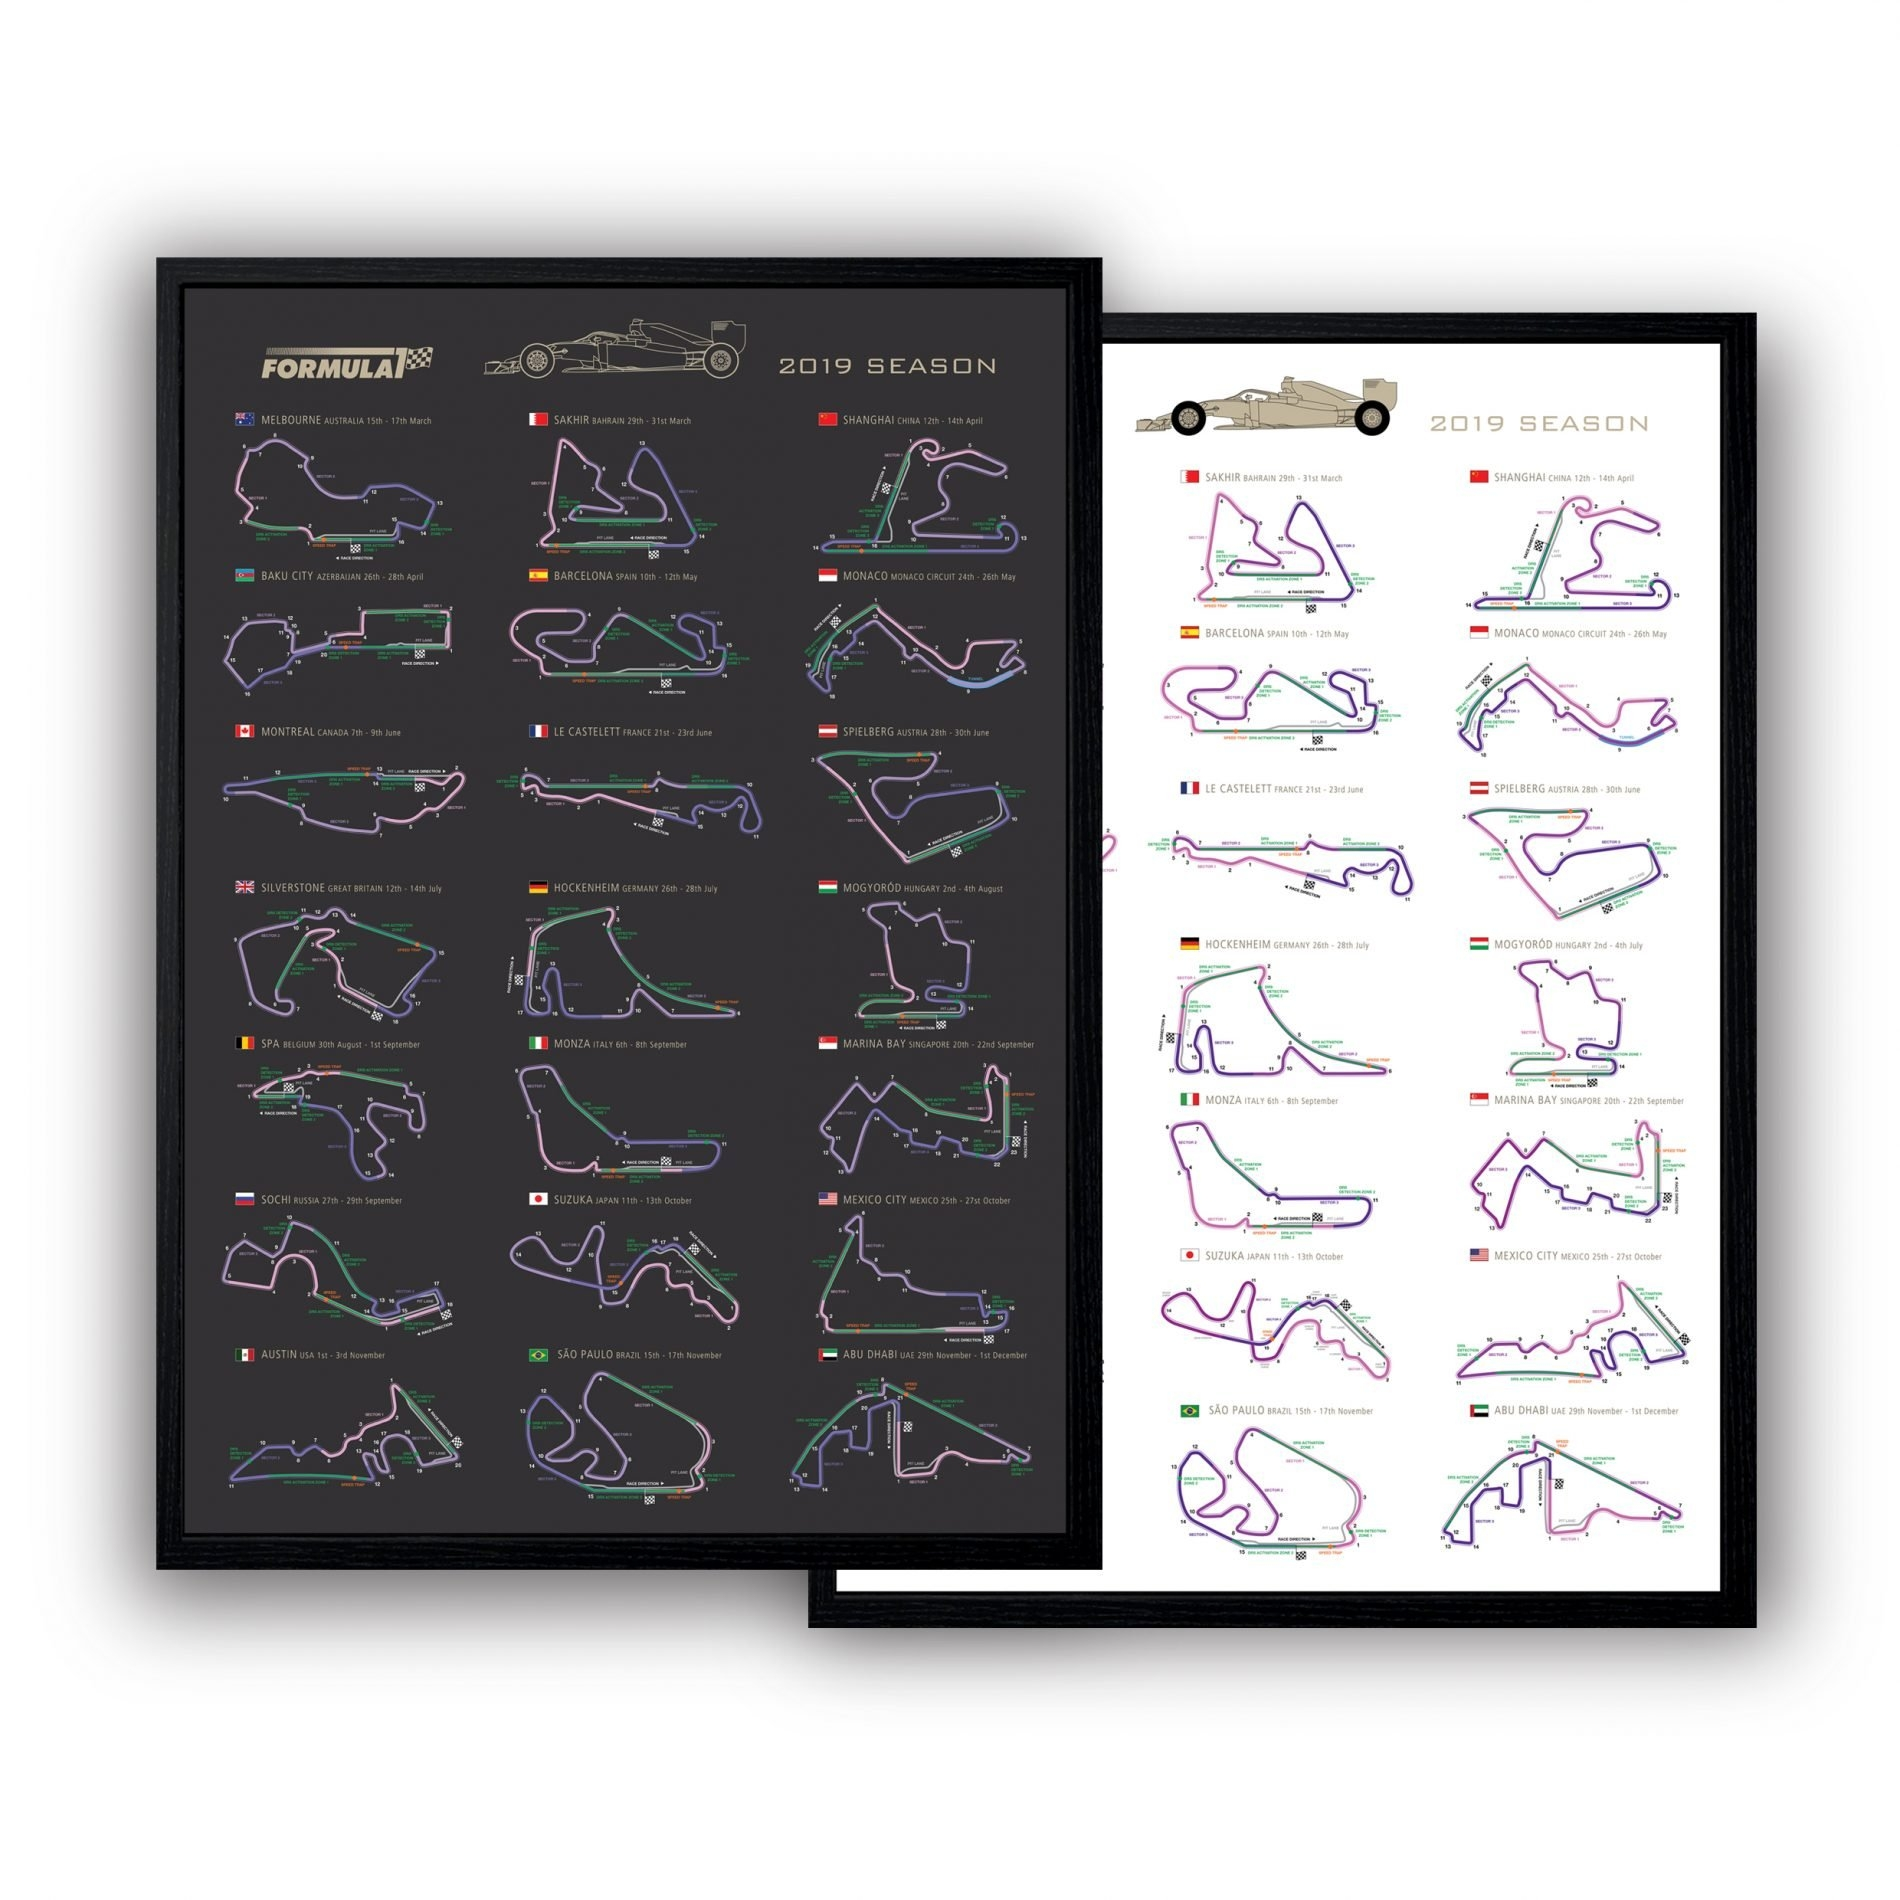 Formula 1 2019 Circuits Poster Calendar – The Gpbox Formula 1 Calendar 2019